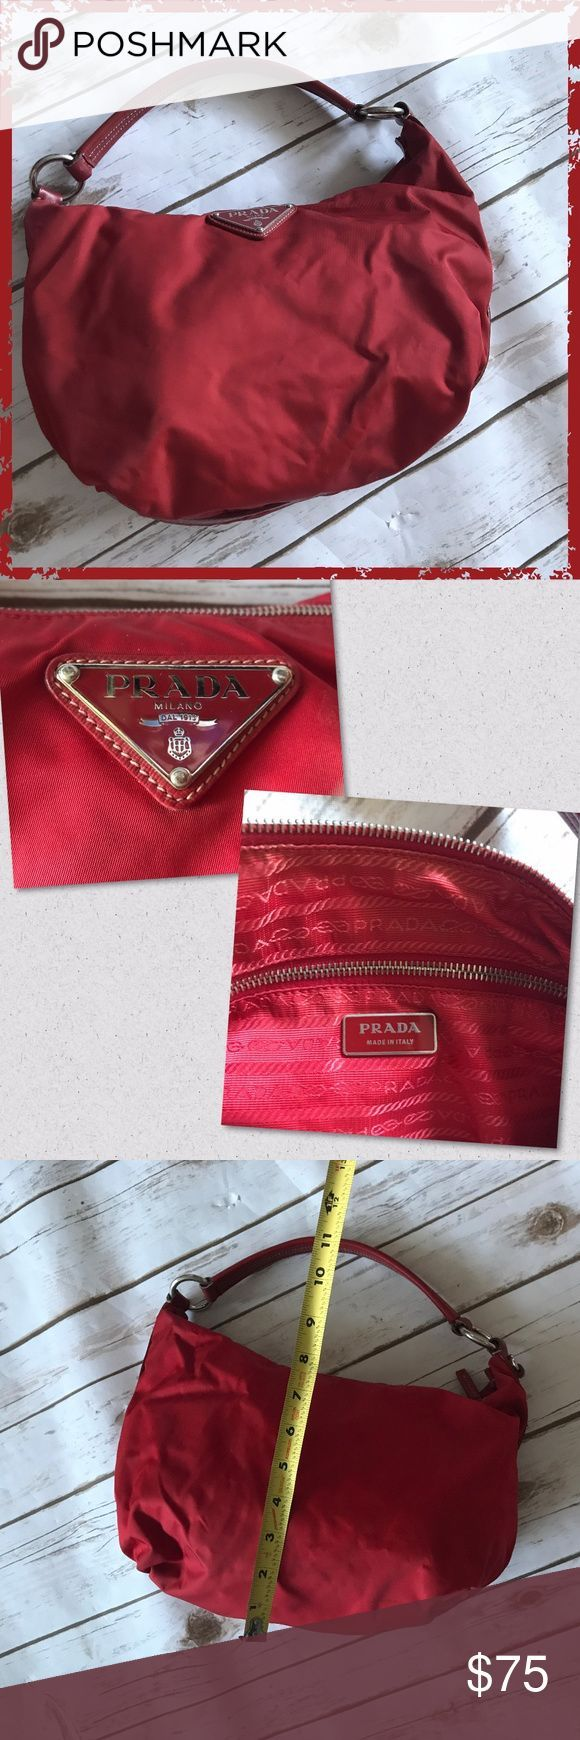 Authentic Prada Red Small Hobo Shoulder Handbag Authentic Prada Beautiful deep r Authentic Prada Red Small Hobo Shoulder Handbag Authentic Prada Beautiful deep r